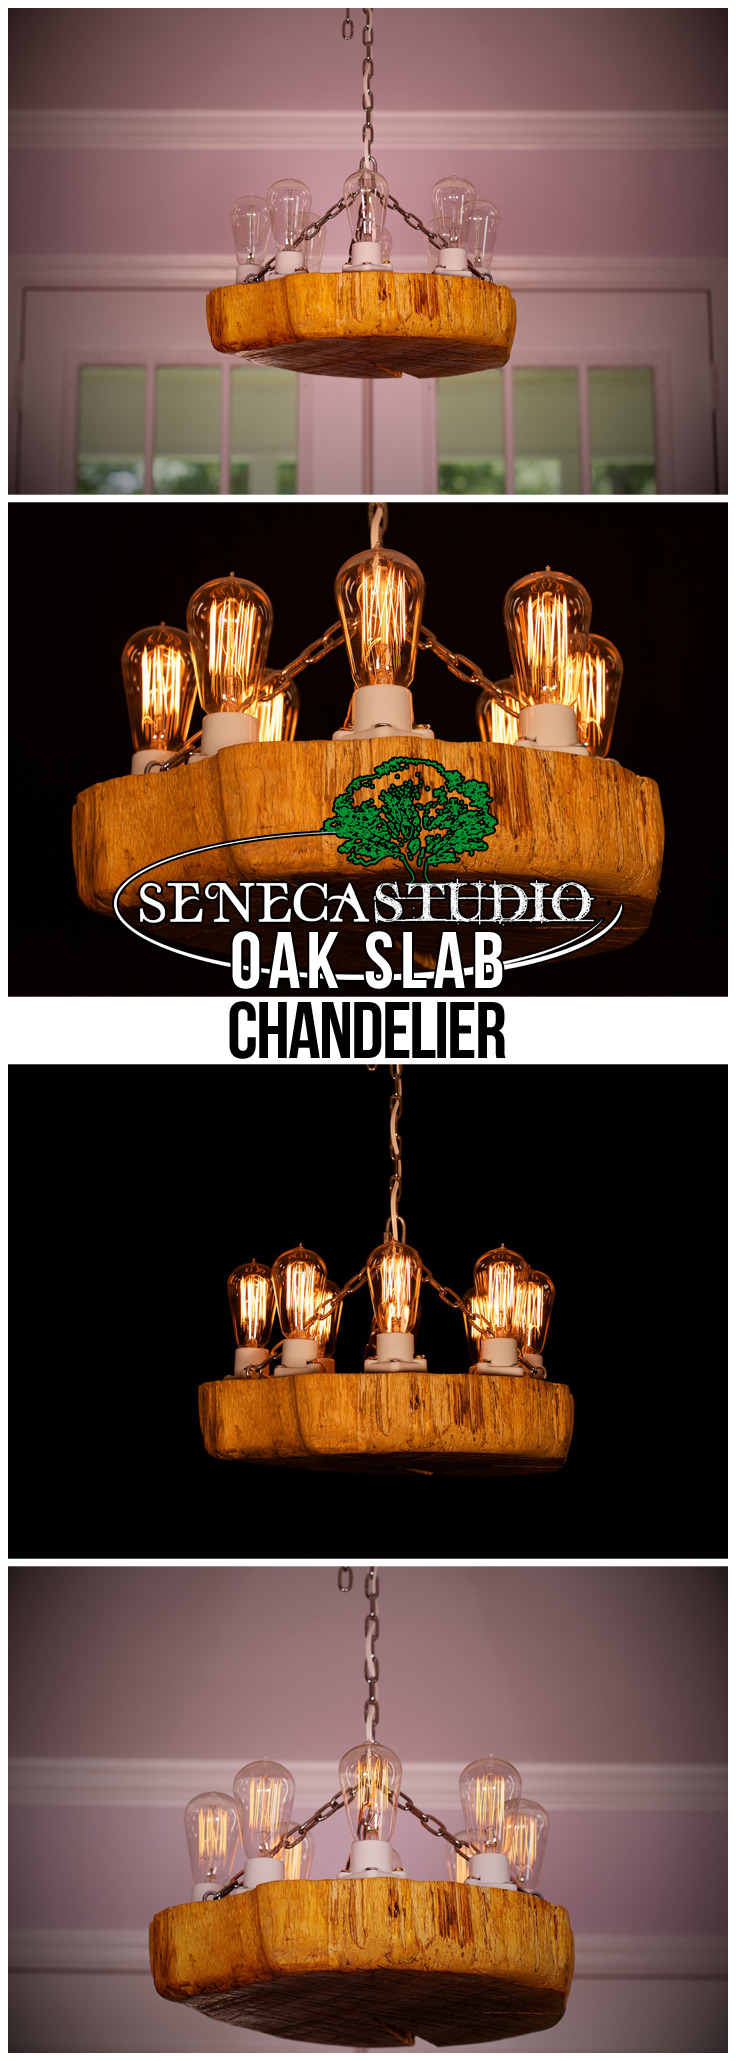 Oak Slab Chandelier